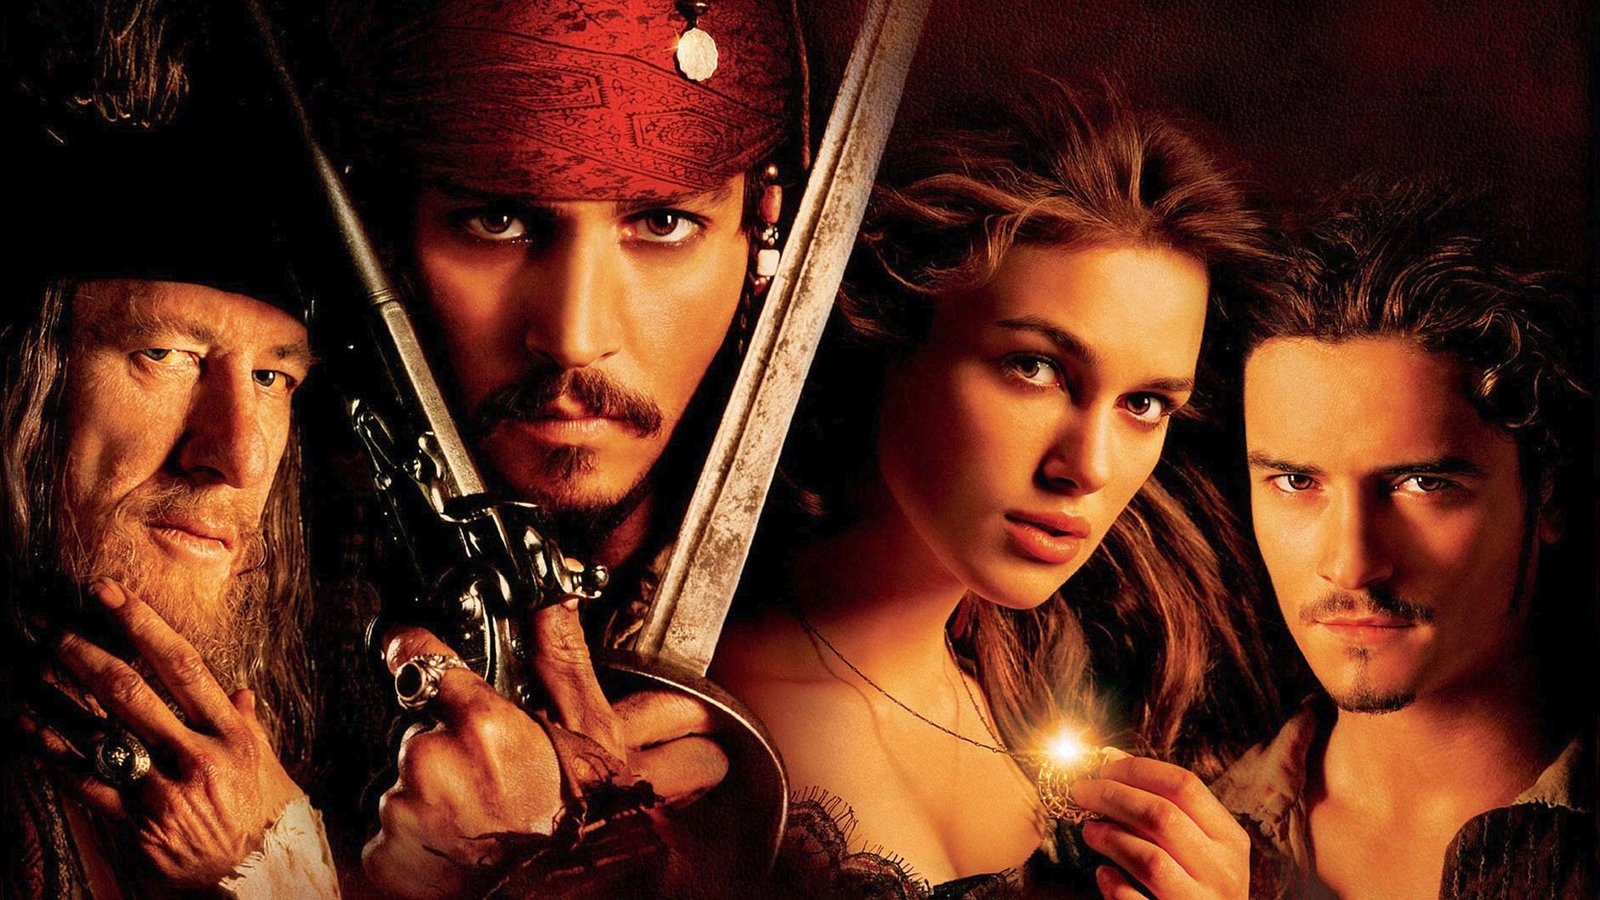 / Pirates of the Caribbean: The Curse of the Black Pearl